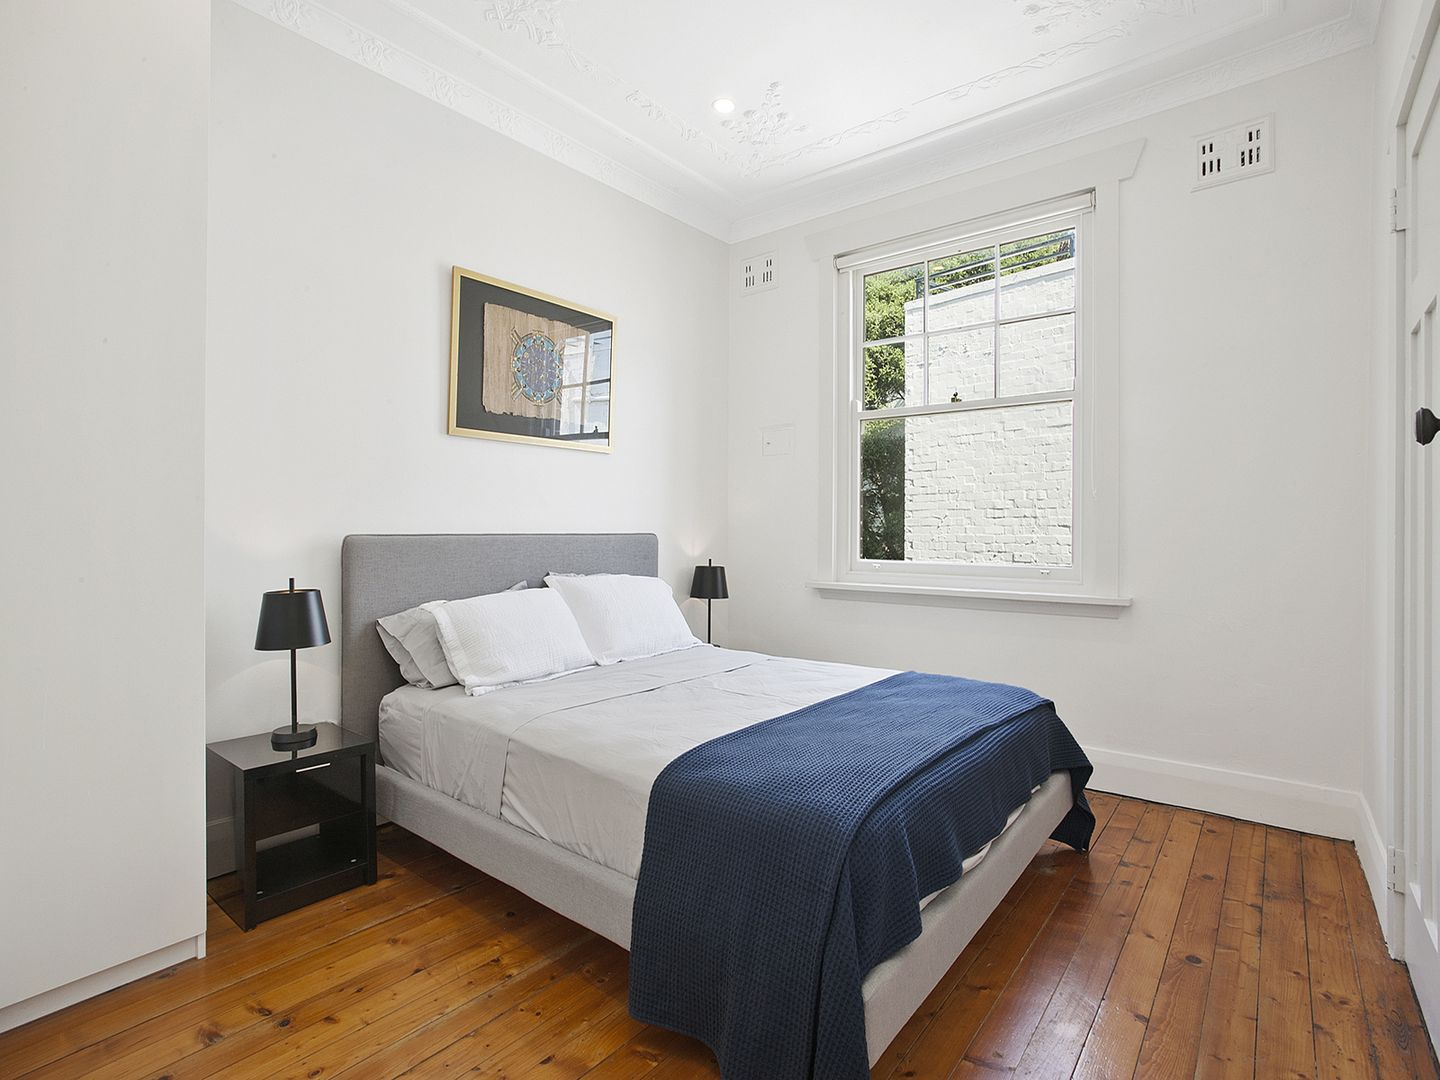 15/3 Farrell Avenue, Darlinghurst NSW 2010, Image 2